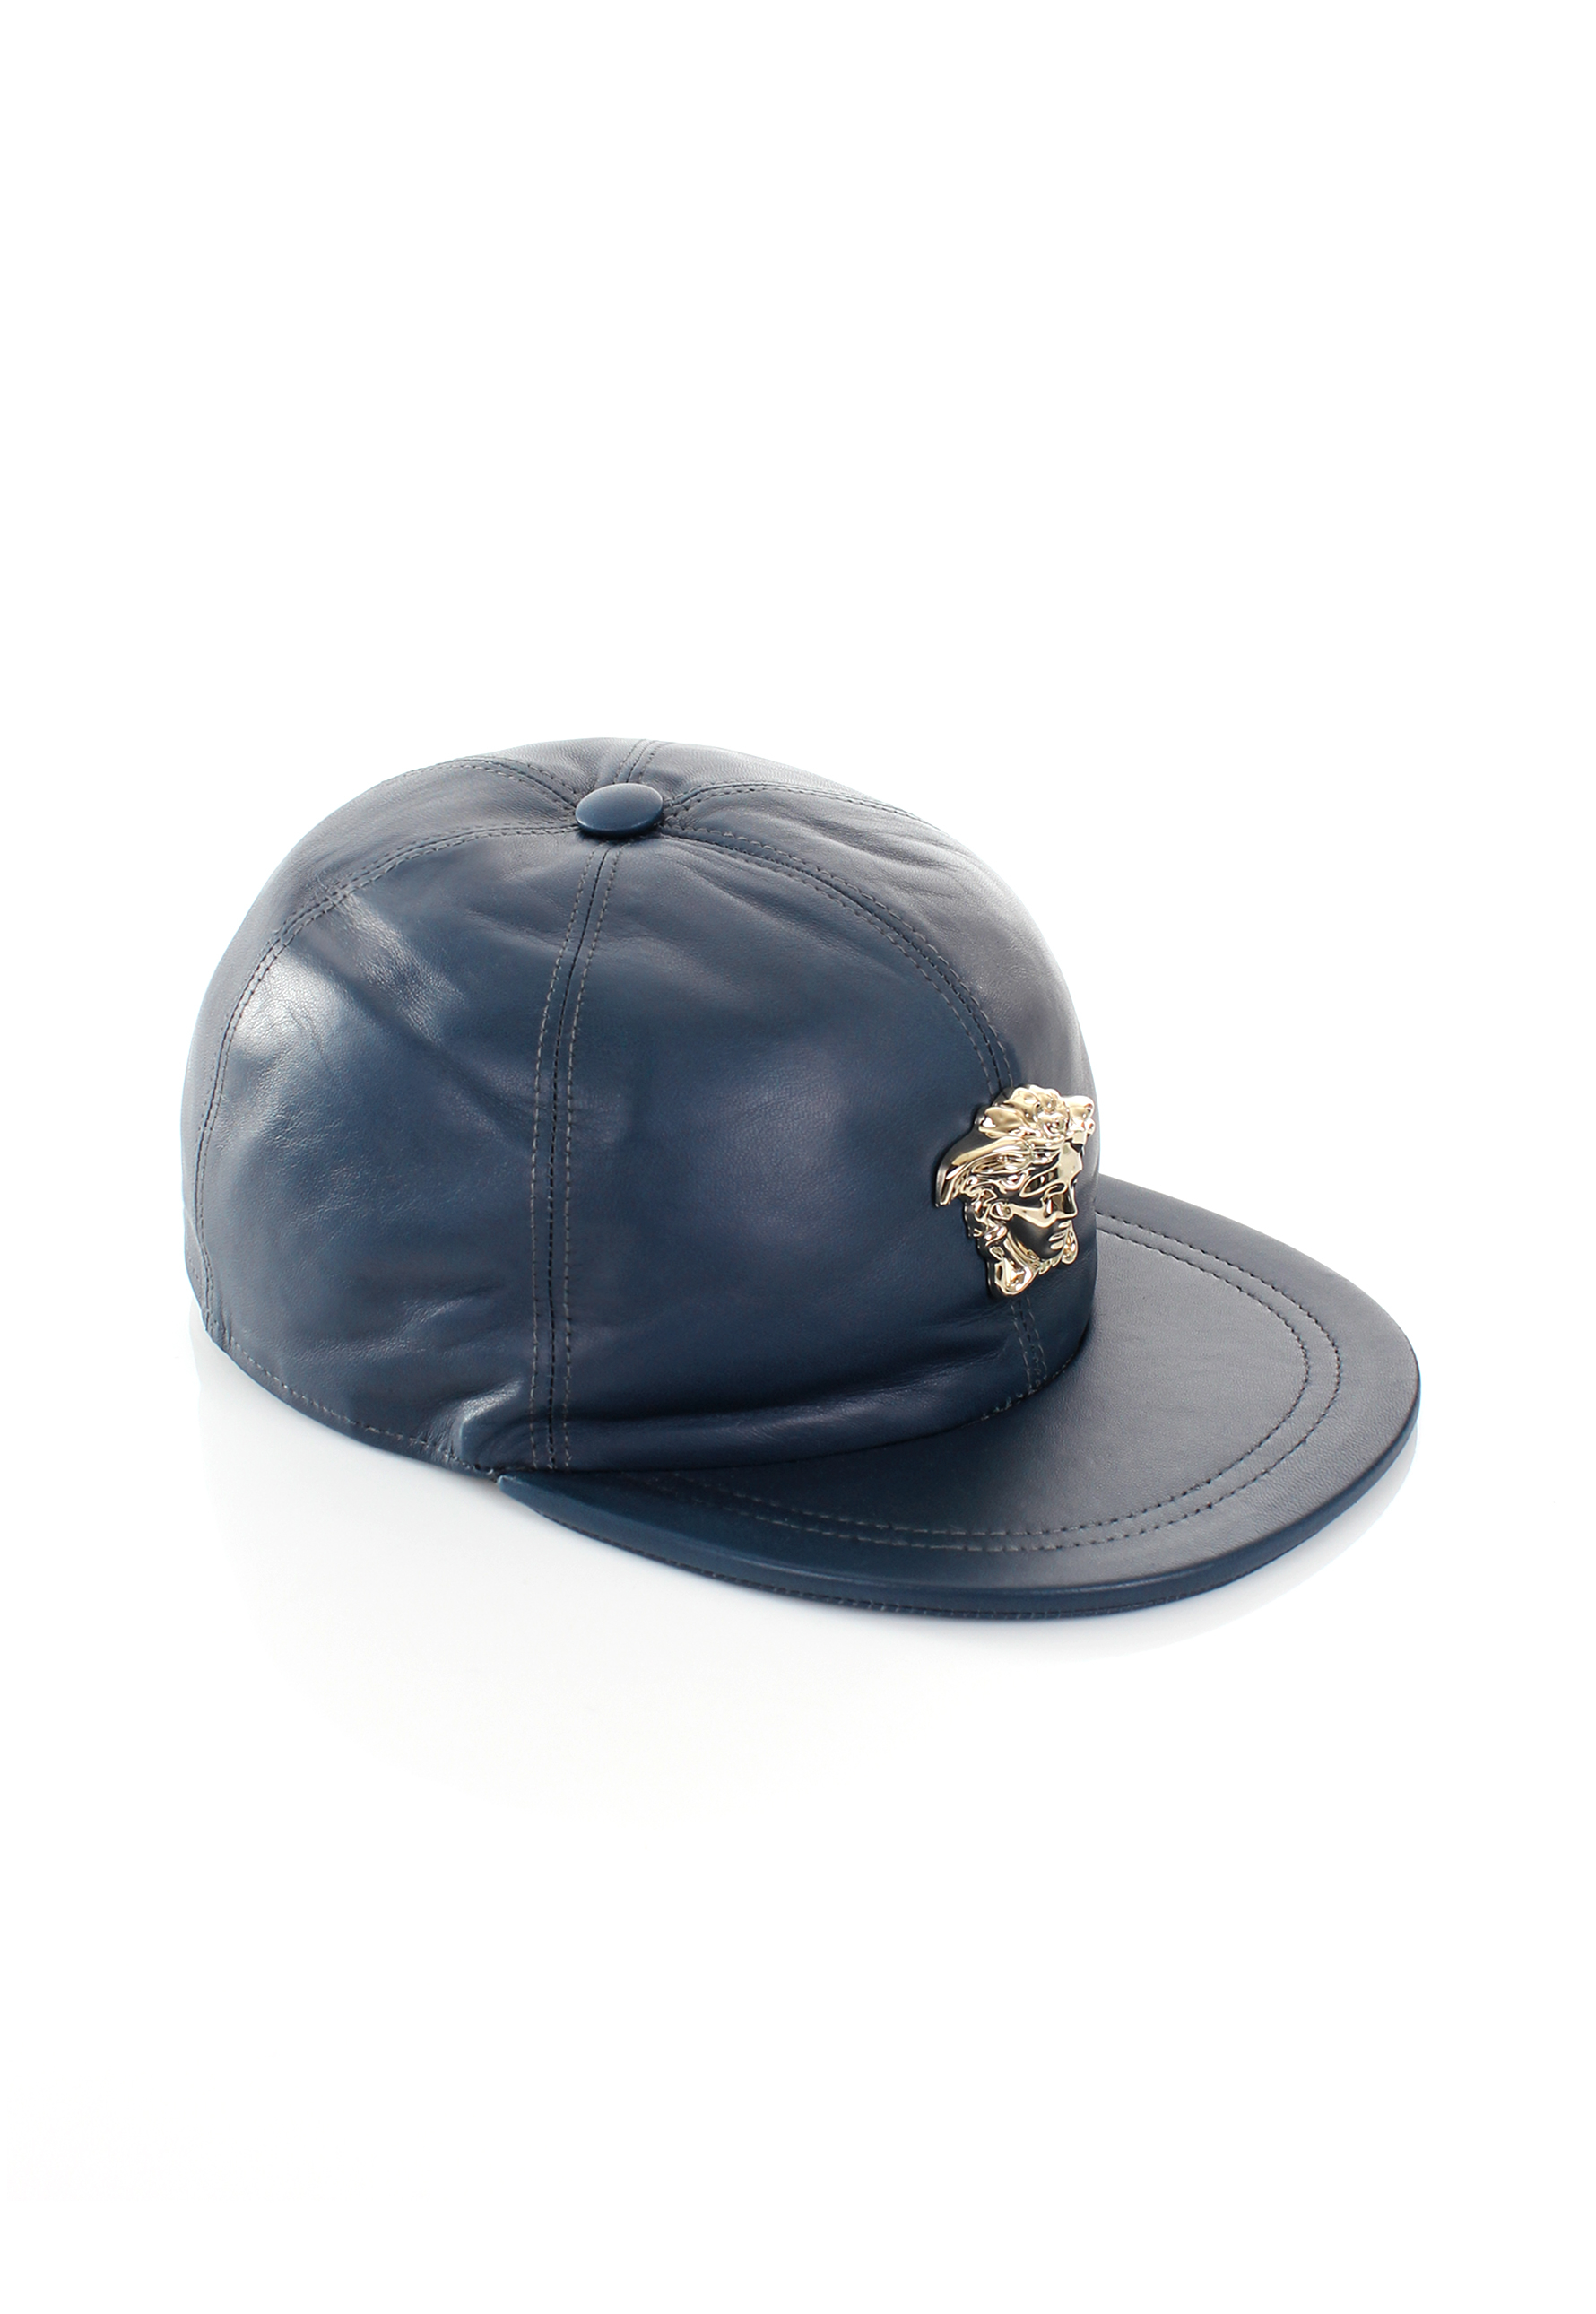 91a8c77b75d Lyst - Versace Gold Medusa Leather Cap Blue in Blue for Men